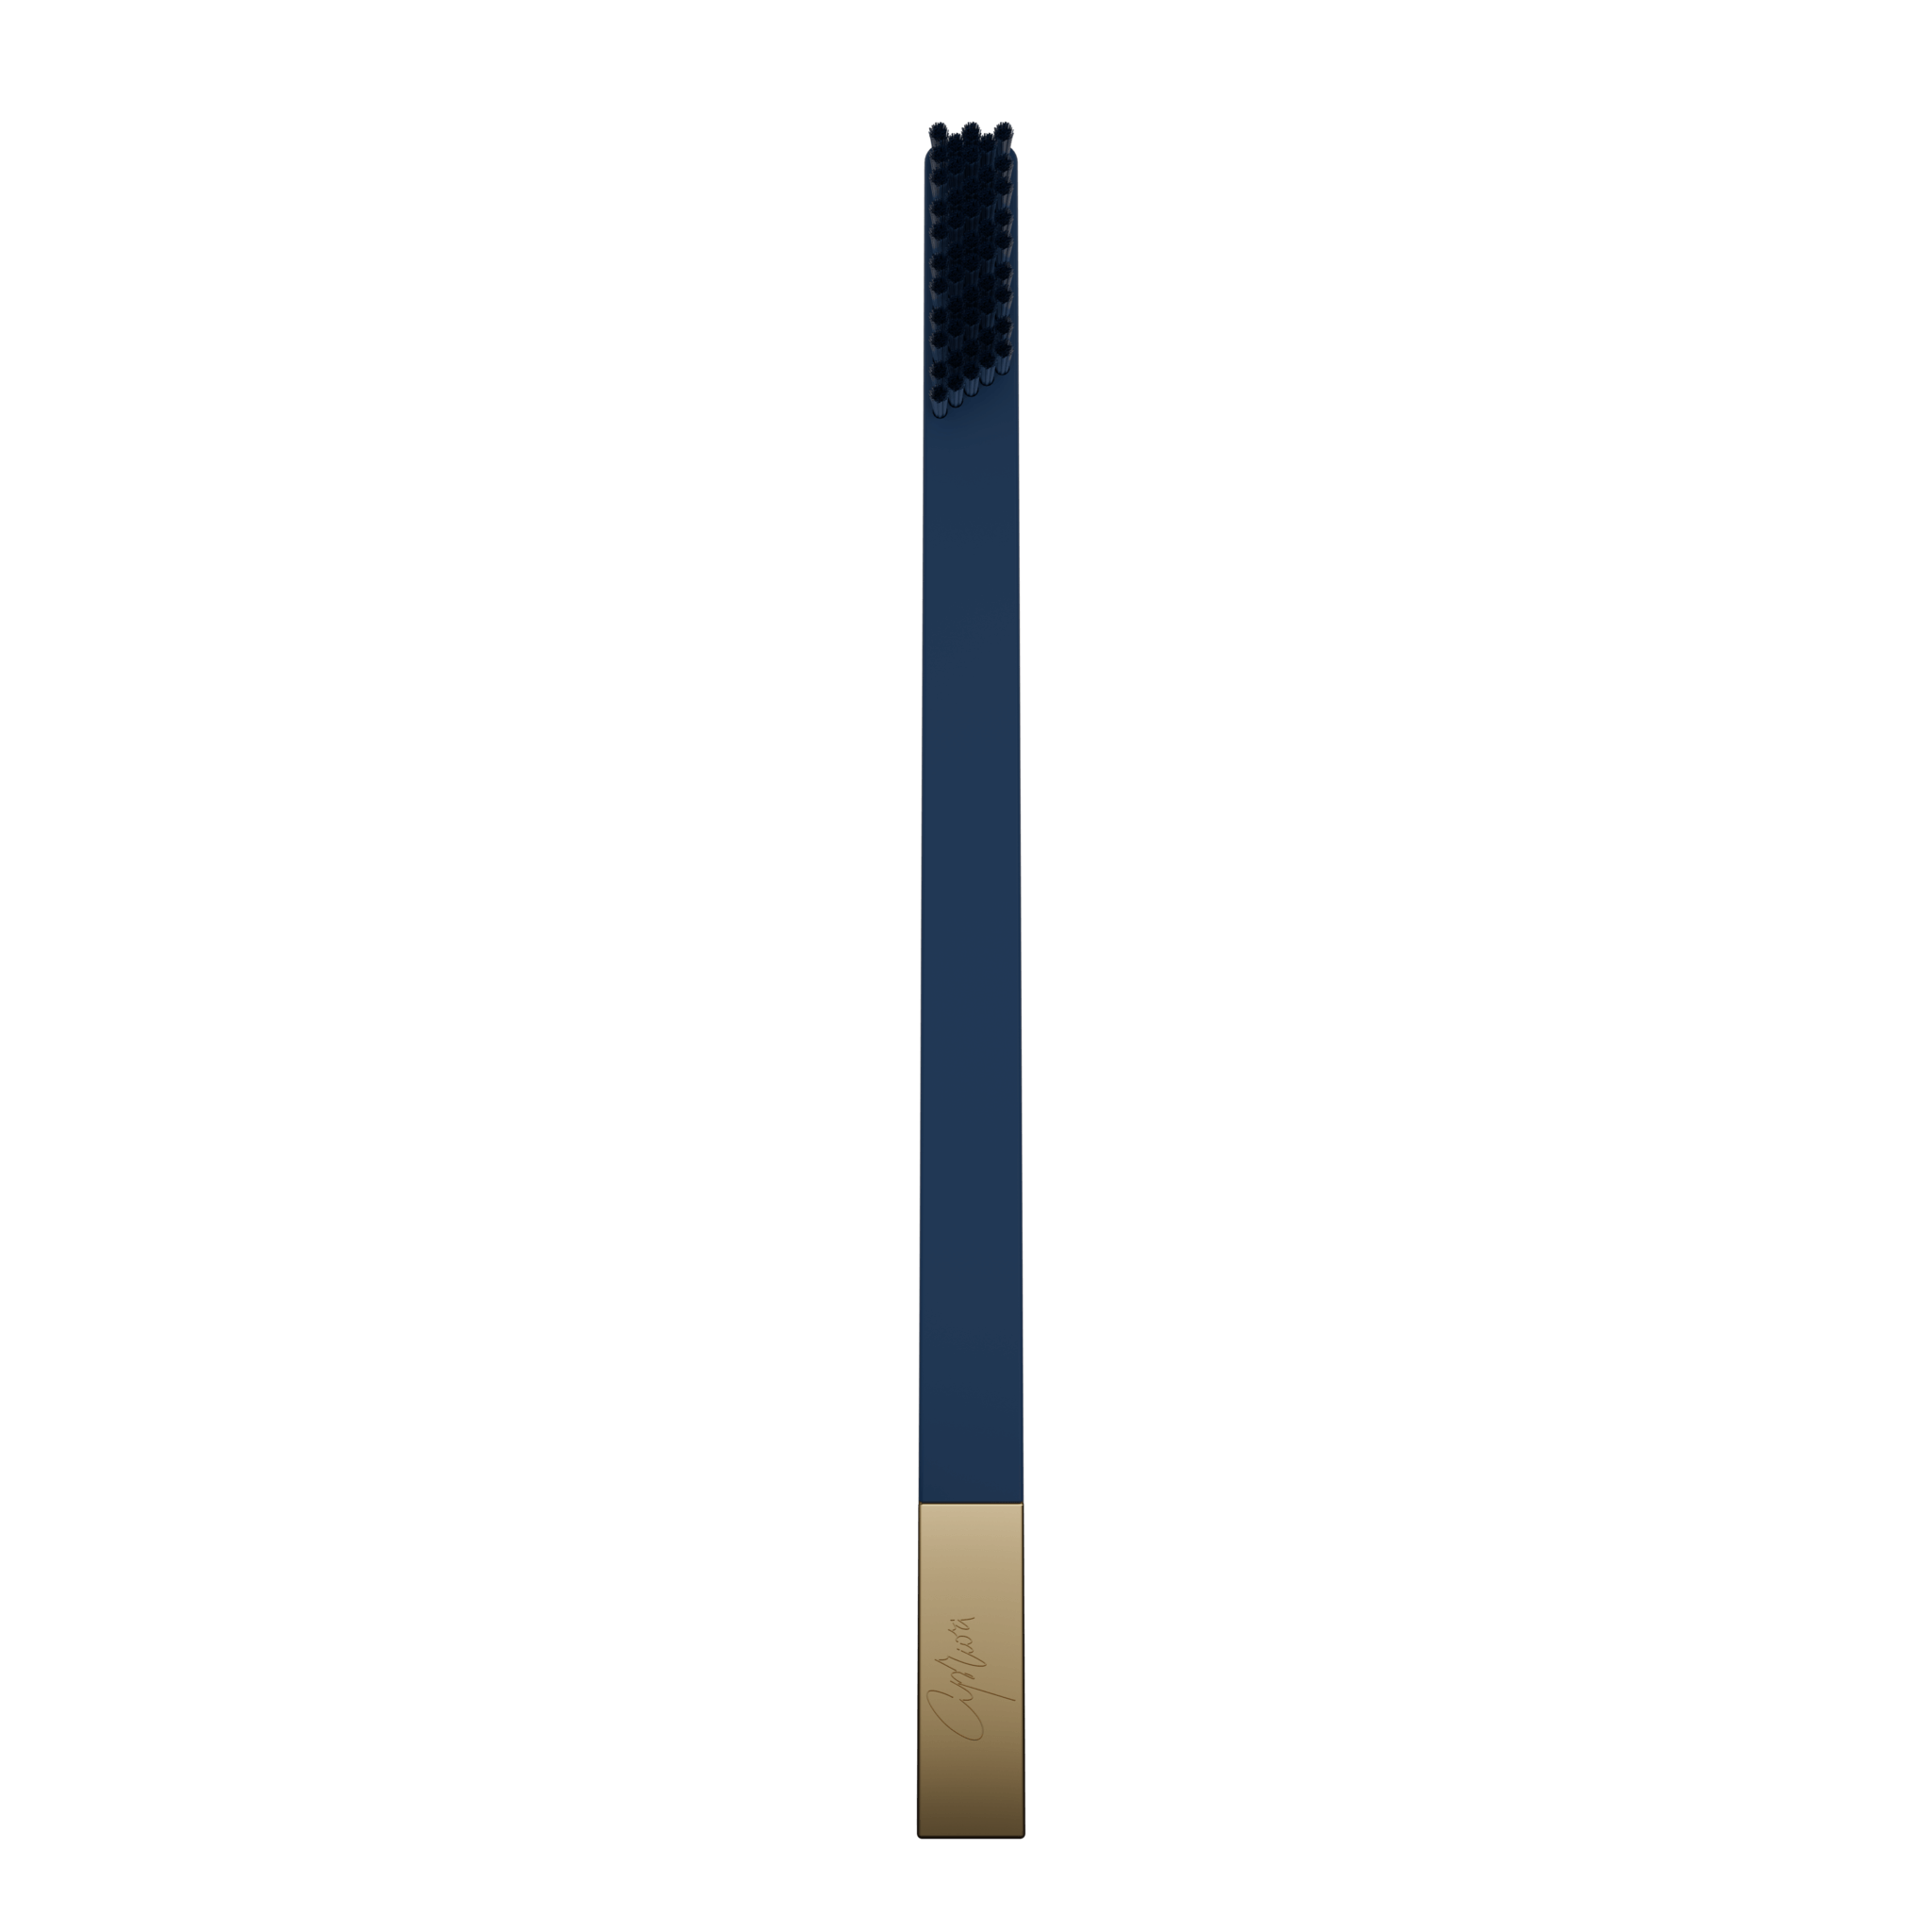 SLIM by Apriori sapphire & gold disposable toothbrush